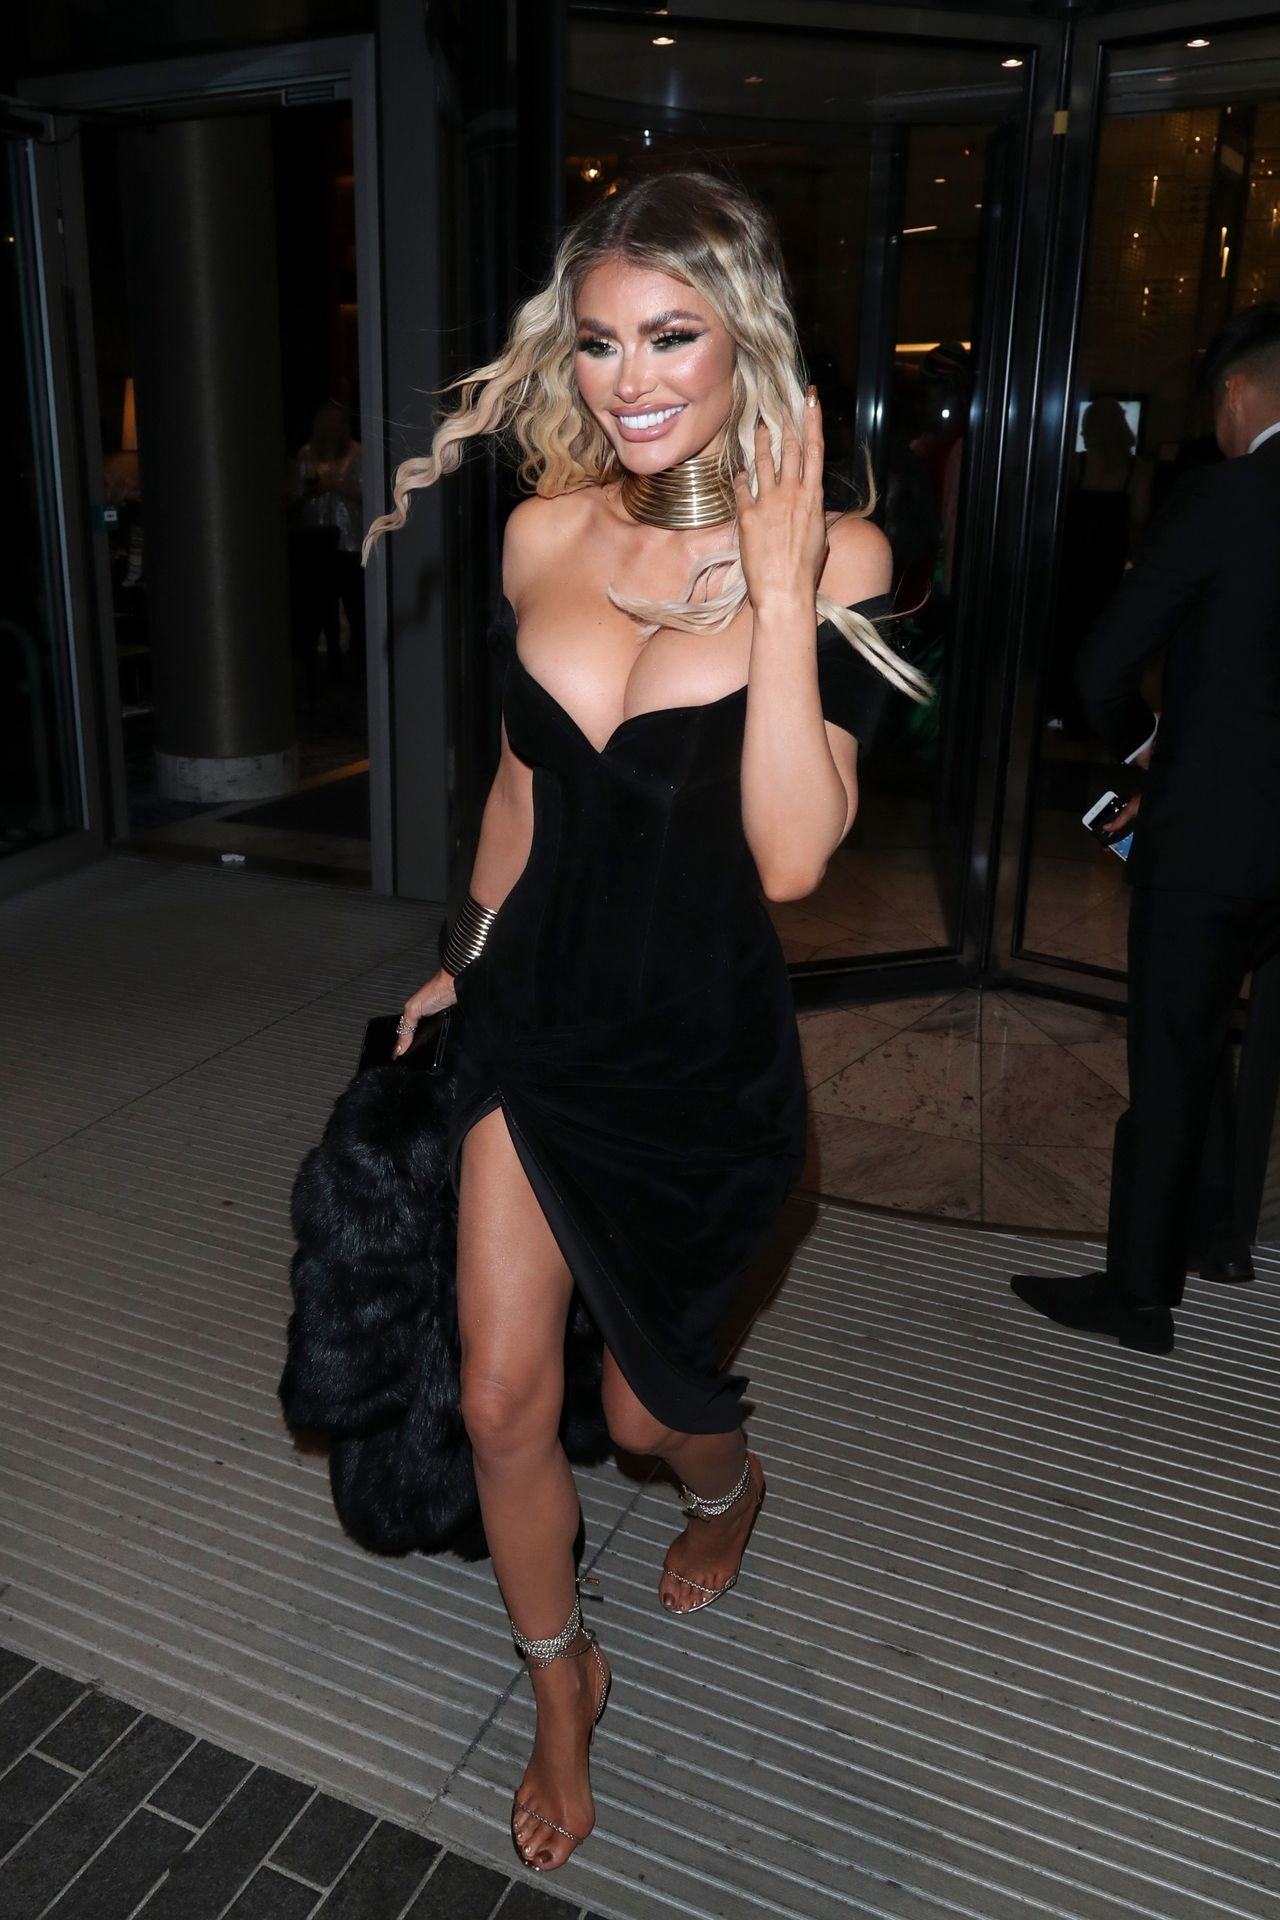 Chloe Sims Shows Off Her Boobs At The Nta Afterparty In London 0010